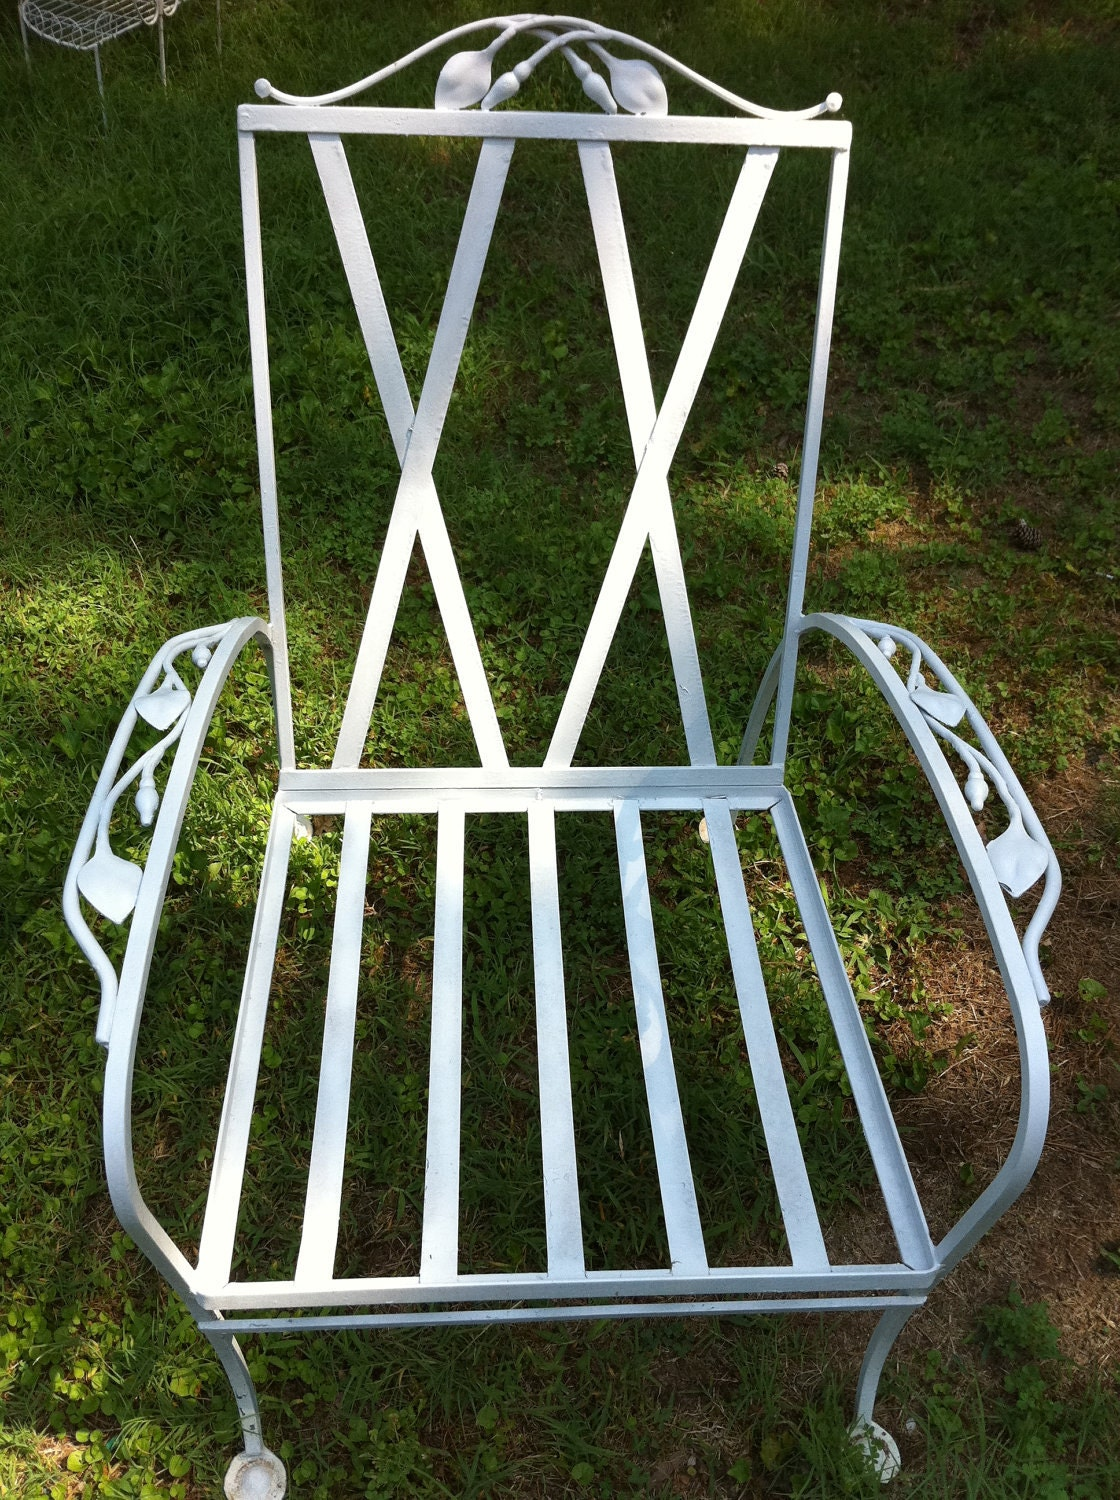 Superb Excellent Sale Vintage Wrought Iron Patio Chair By Lotusjrk On Etsy With Vintage  Wrought Iron Garden Furniture